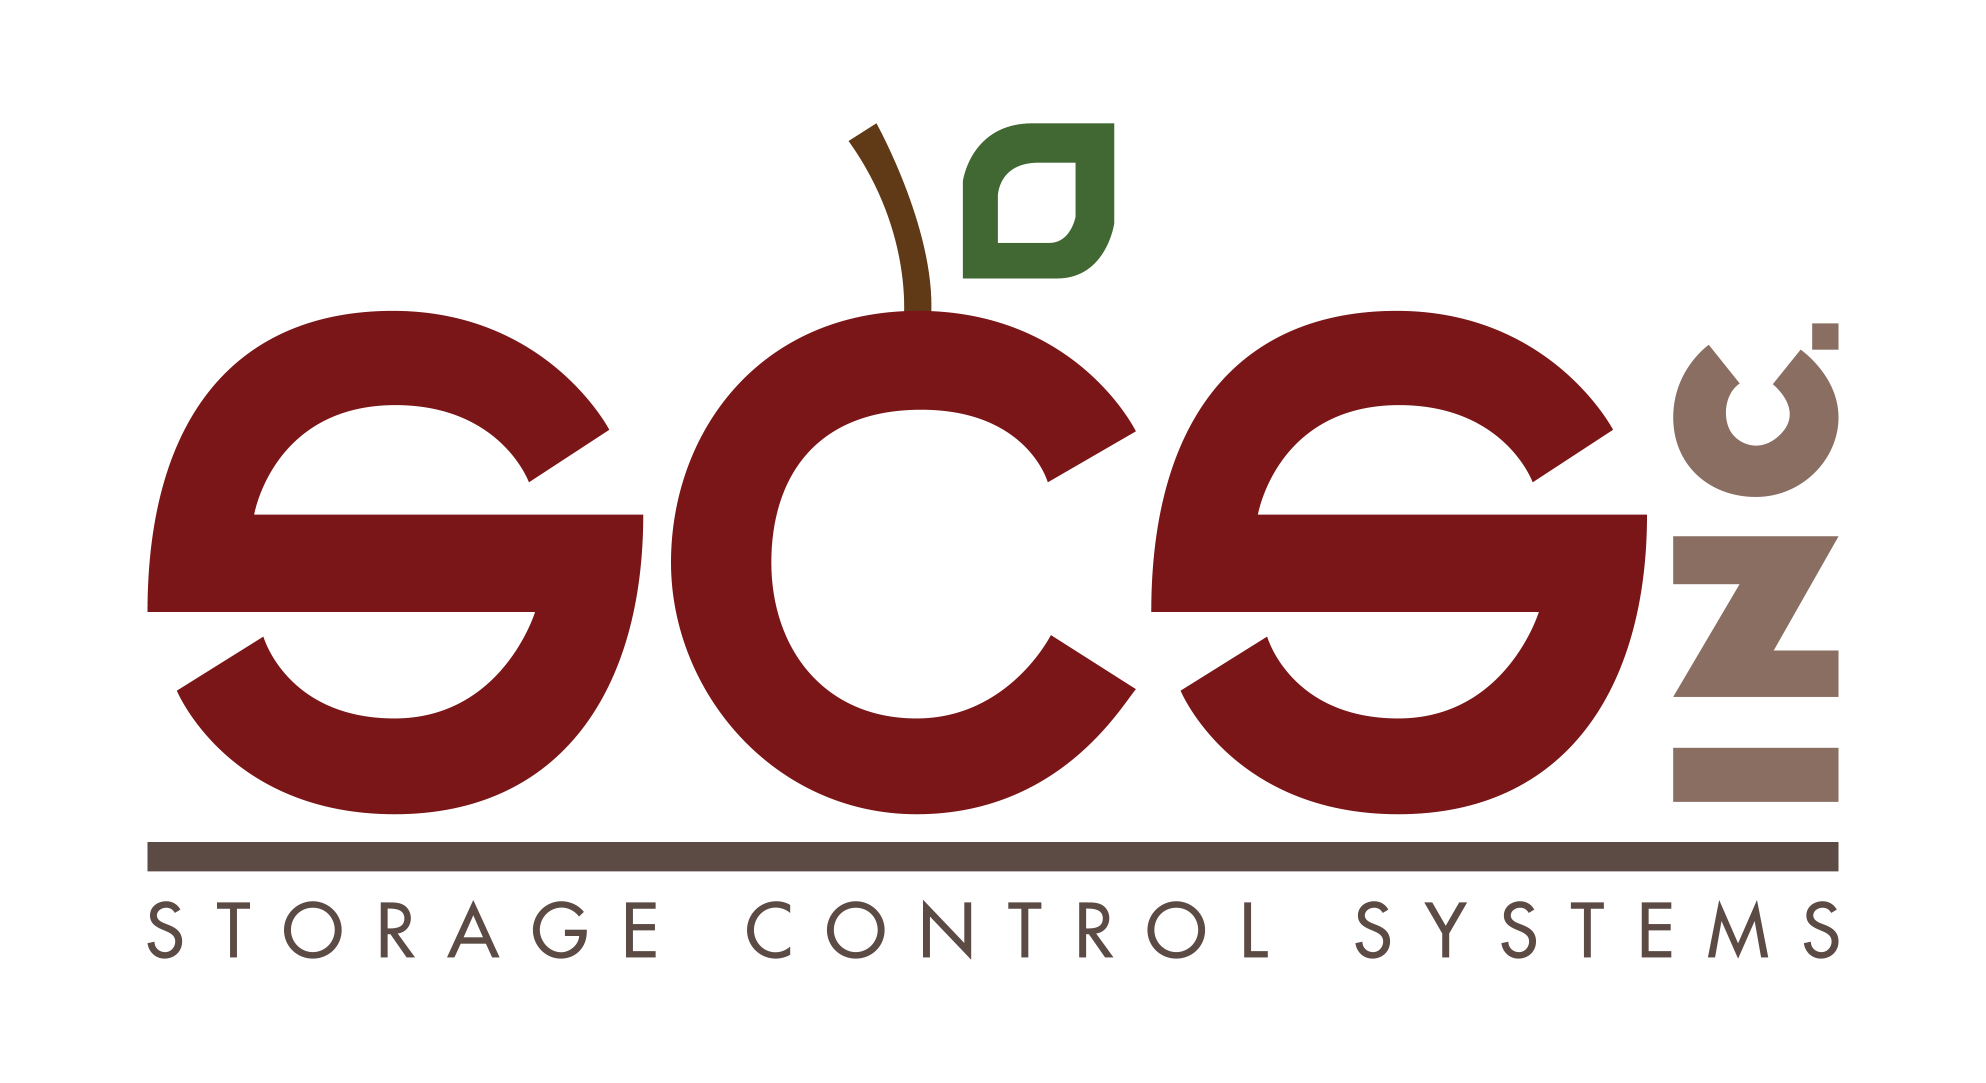 Storage Control Systems